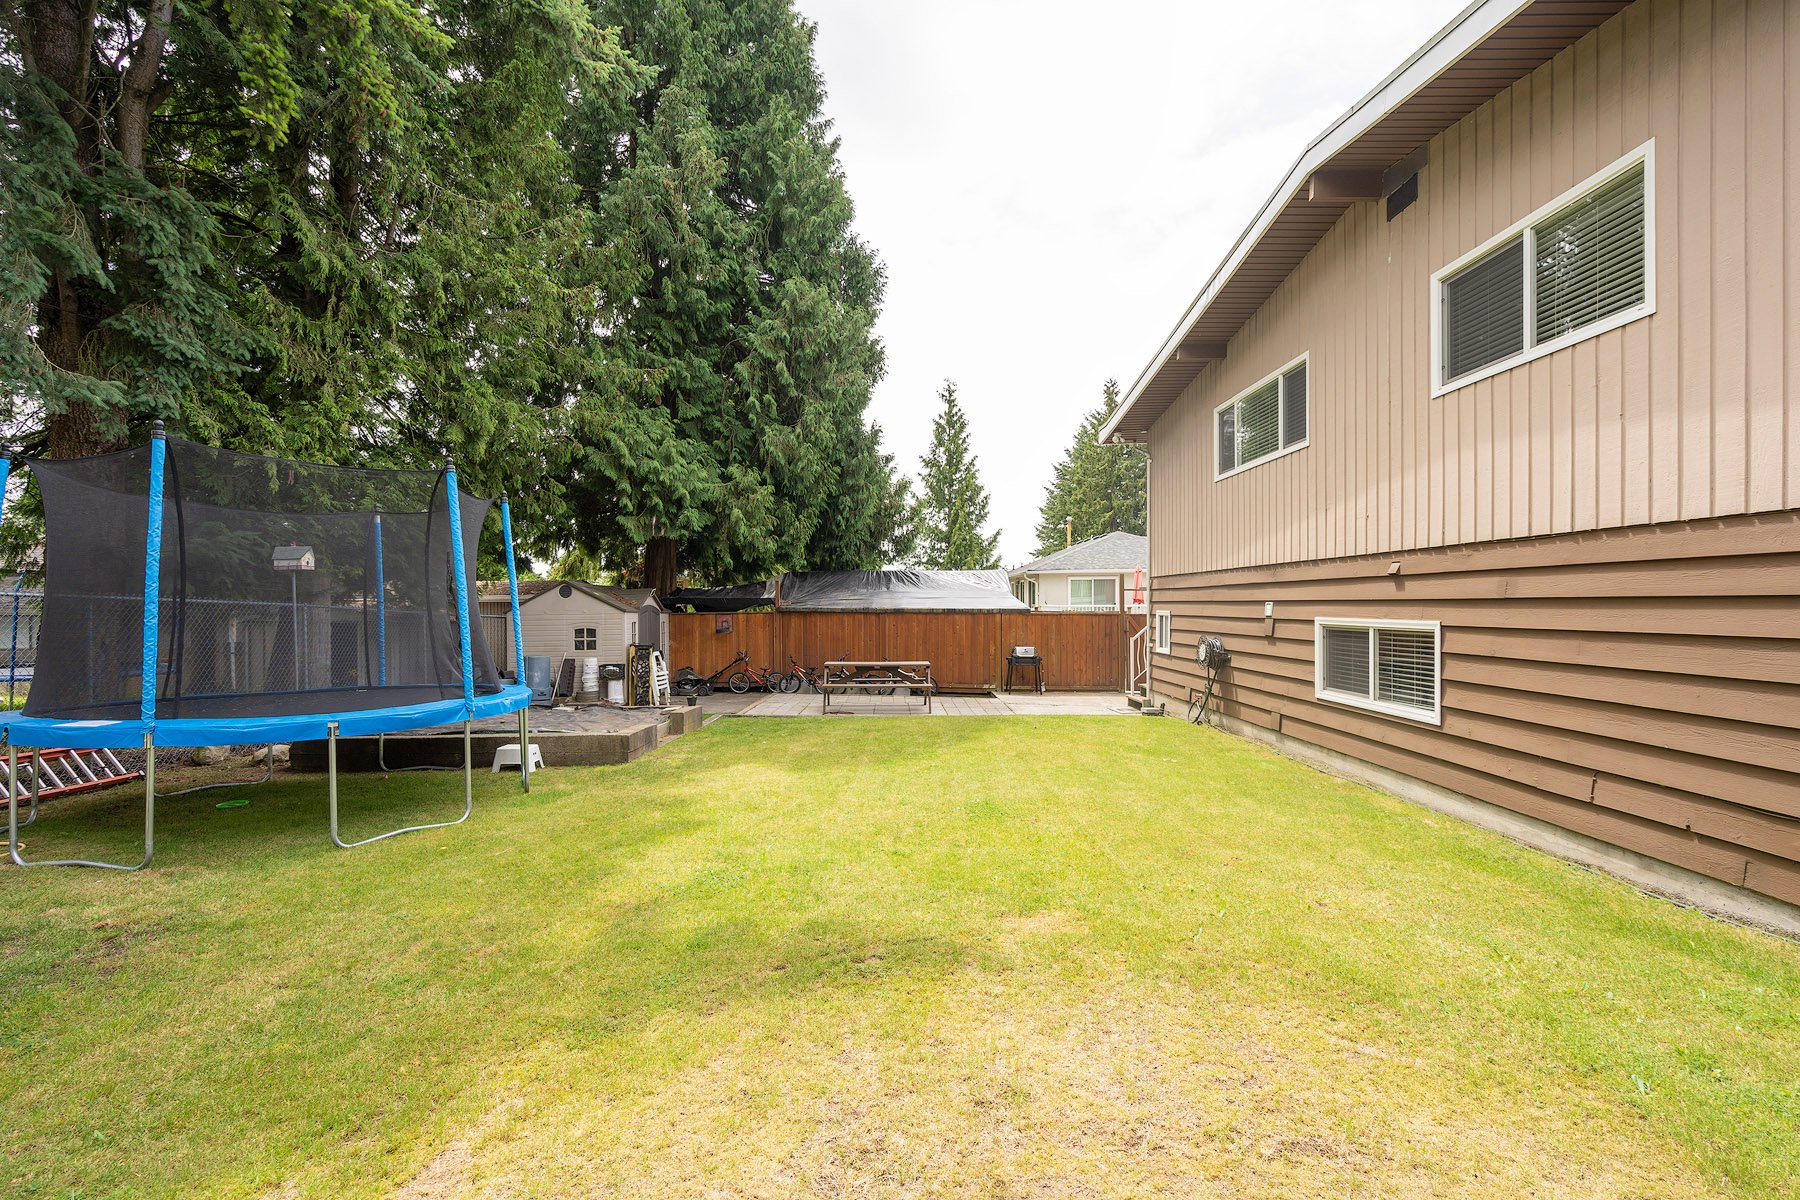 Photo 27: Photos: 423 MONTGOMERY Street in Coquitlam: Central Coquitlam House for sale : MLS®# R2380693